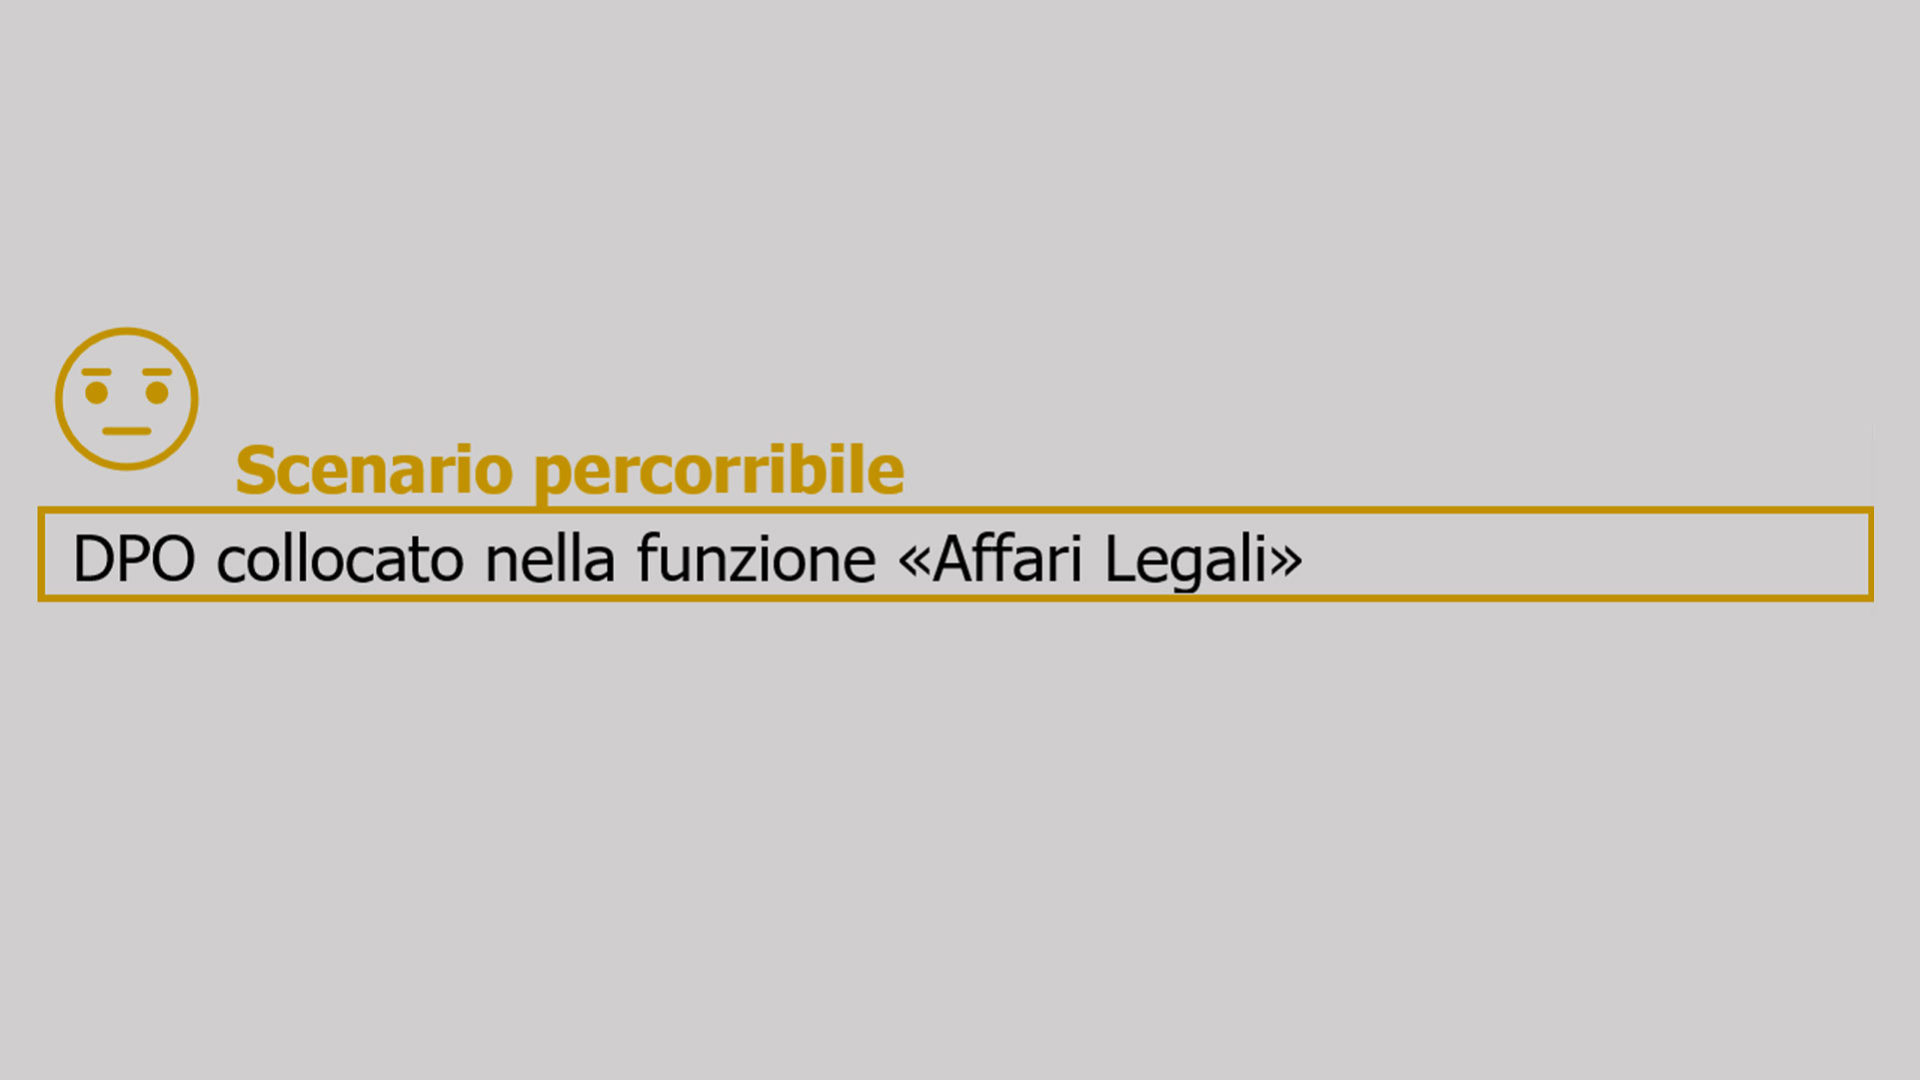 gdpr dpo scenario percorribile